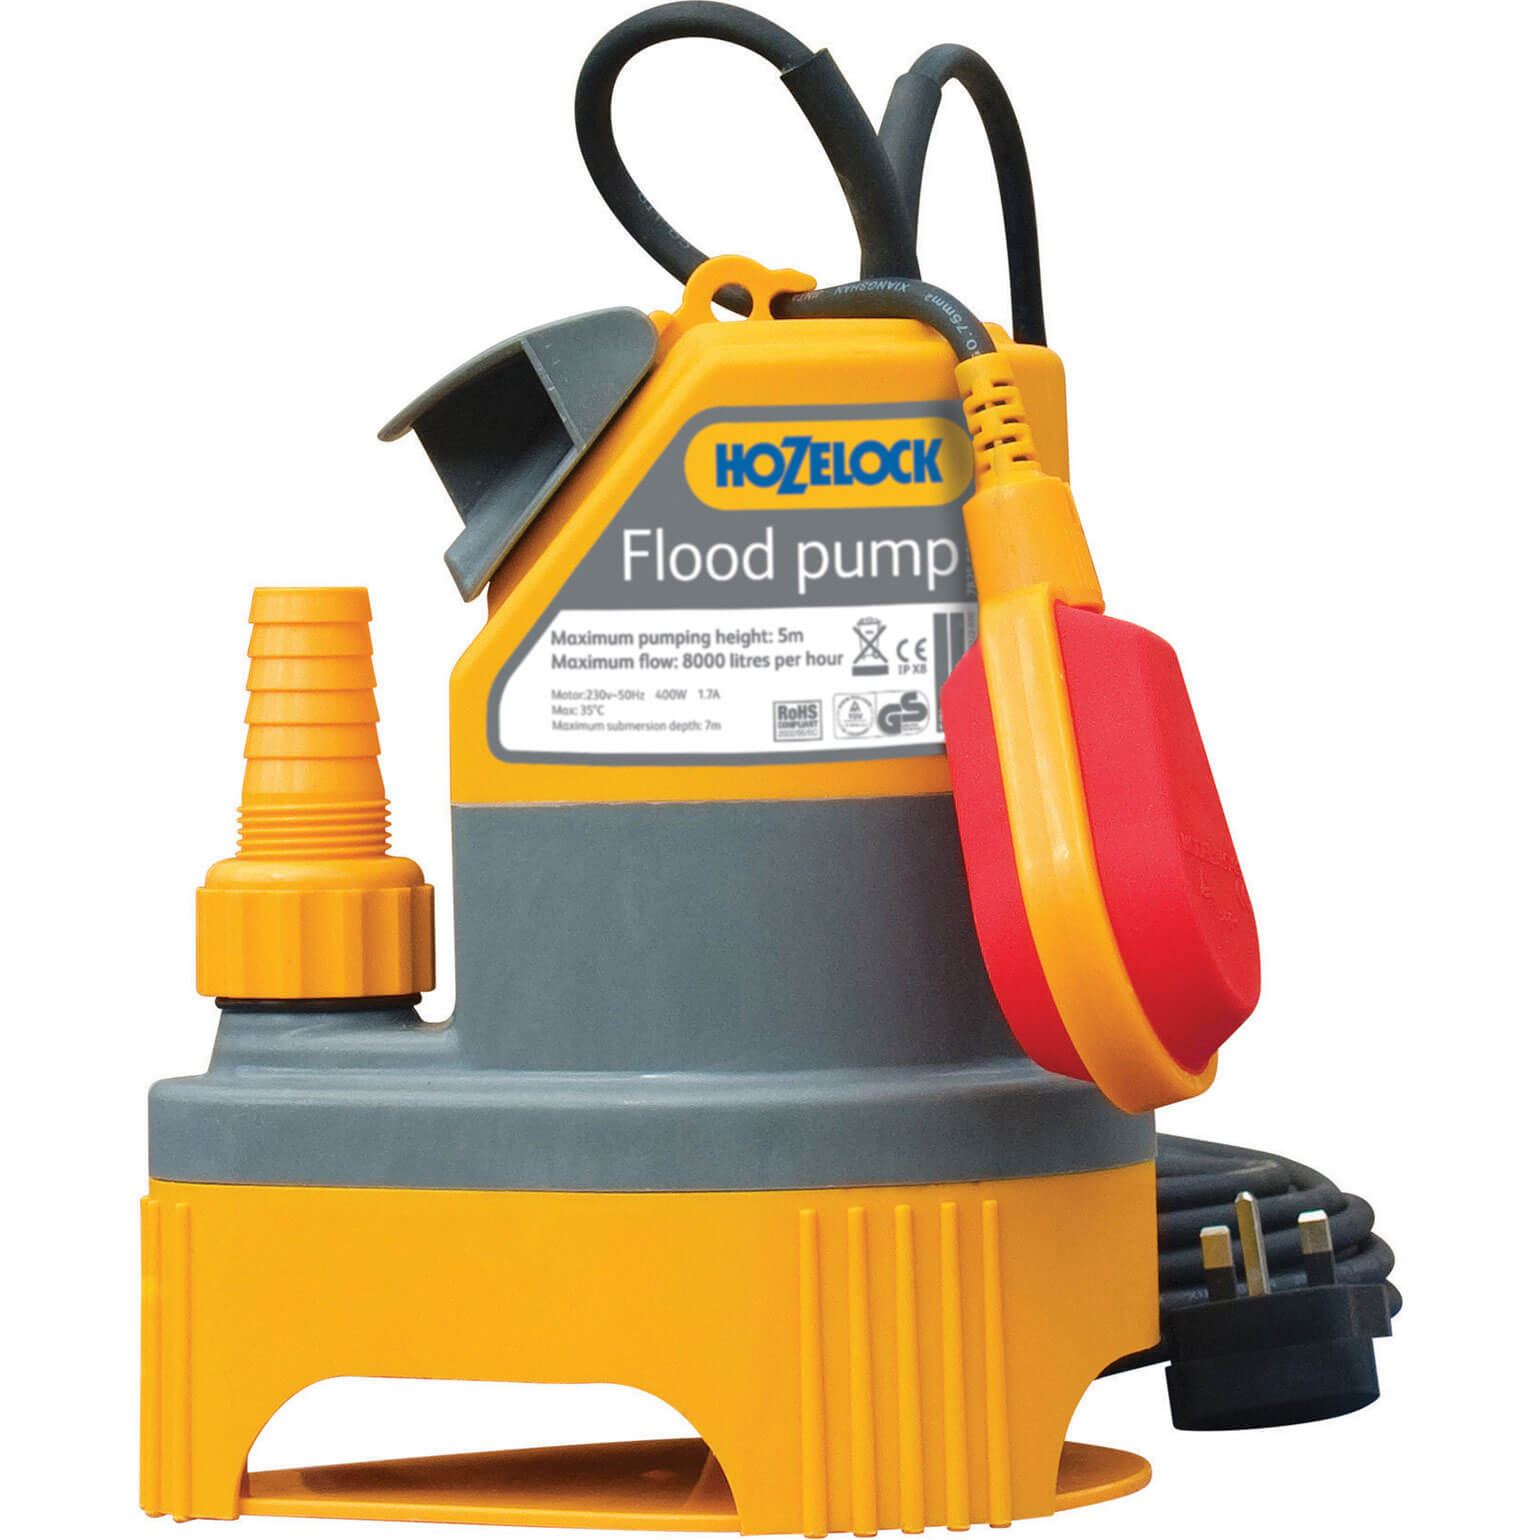 Hozelock 2 In 1 Submersible Flood & Dirty Water Pump with Float Switch 6 Metre Lift 6000 Litres Hour Max Flow 240v